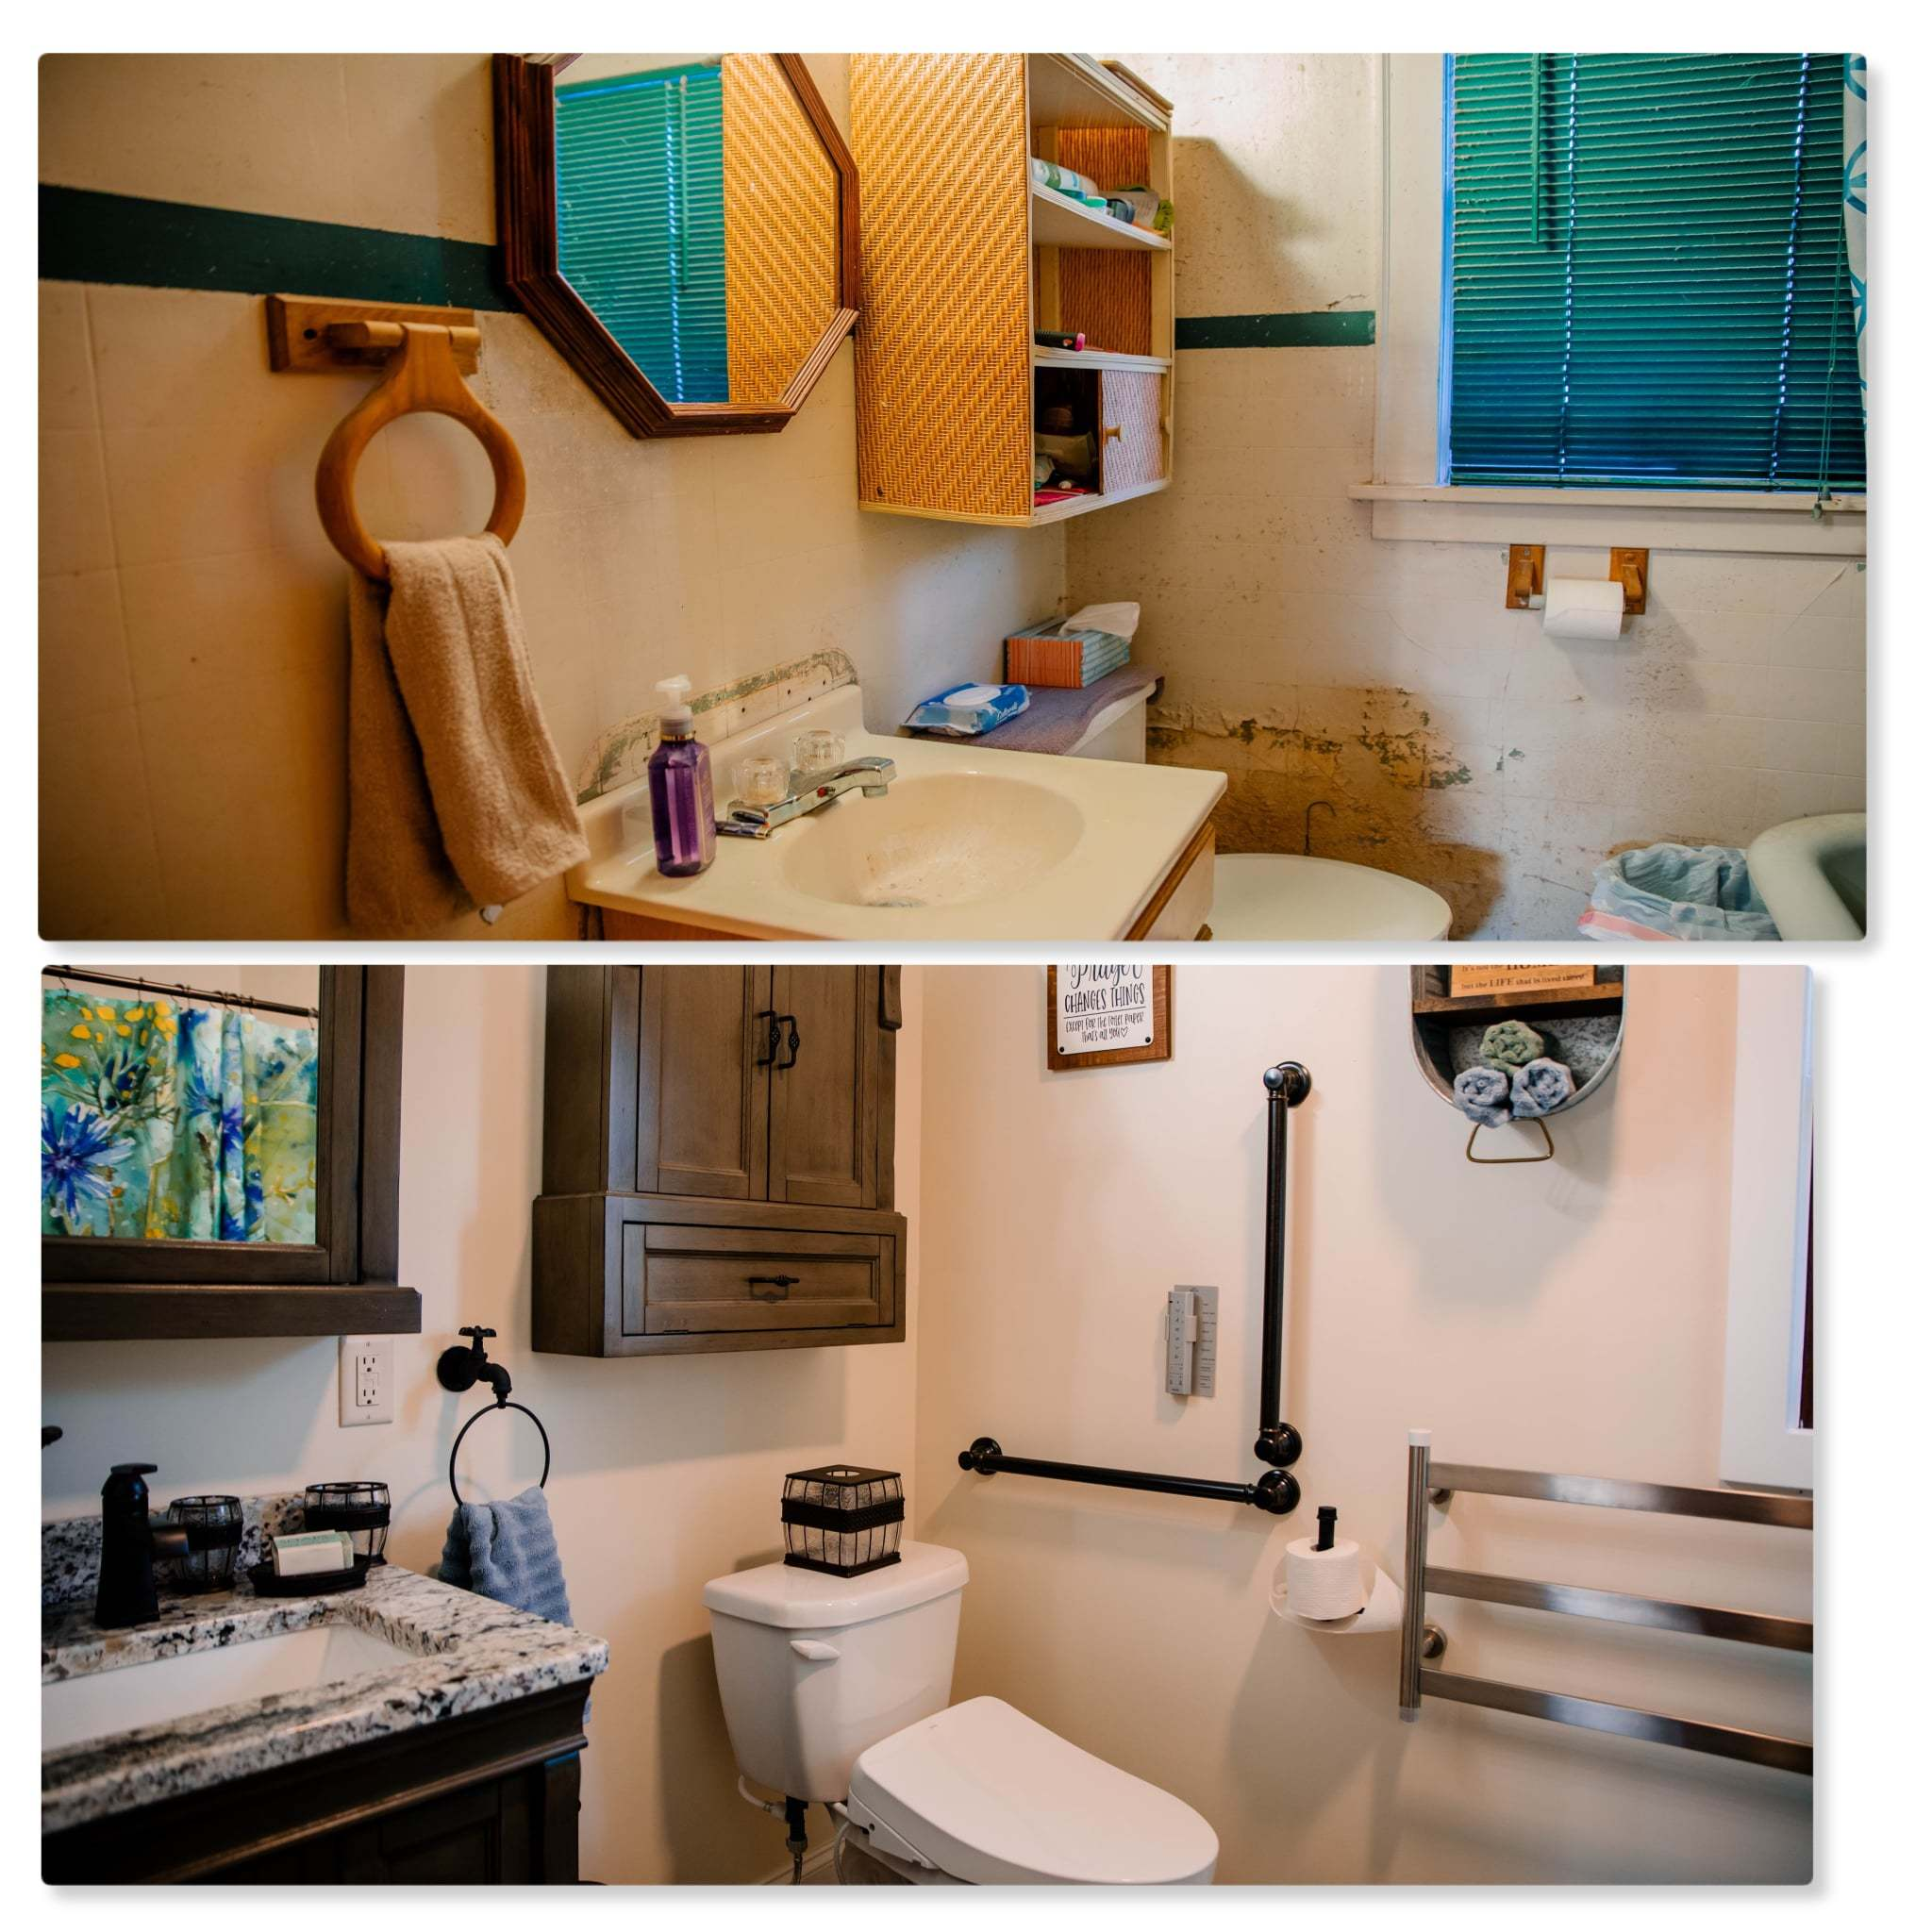 Before and after shots of the bathroom renovation